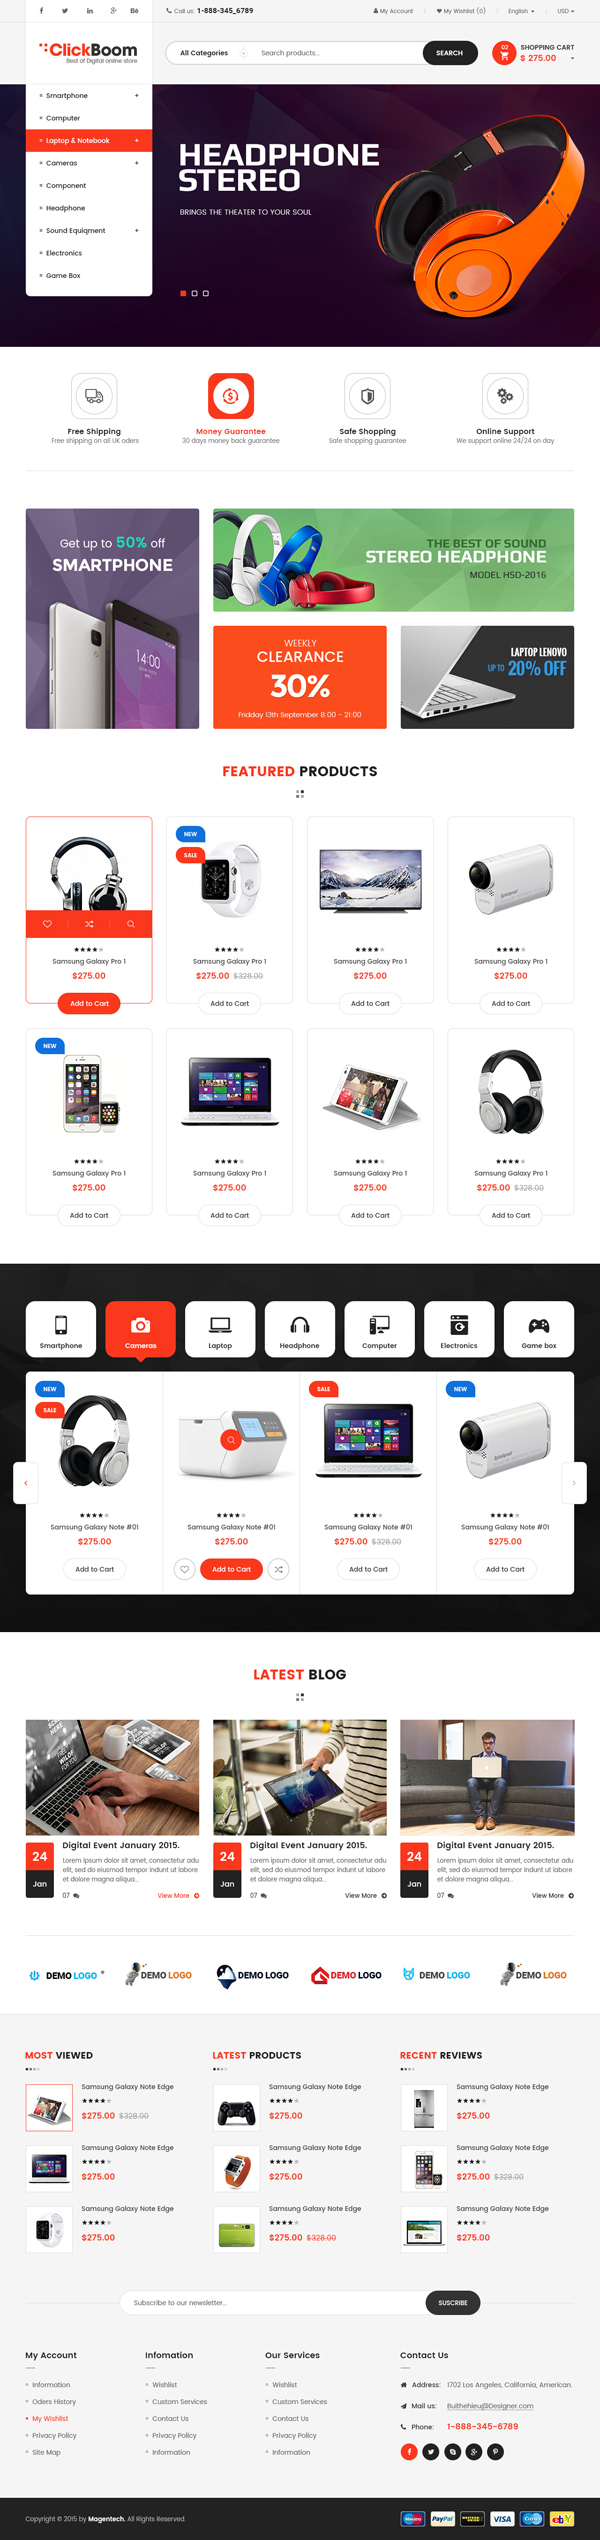 ClickBoom - WooCommerce WordPress Digital Store Theme